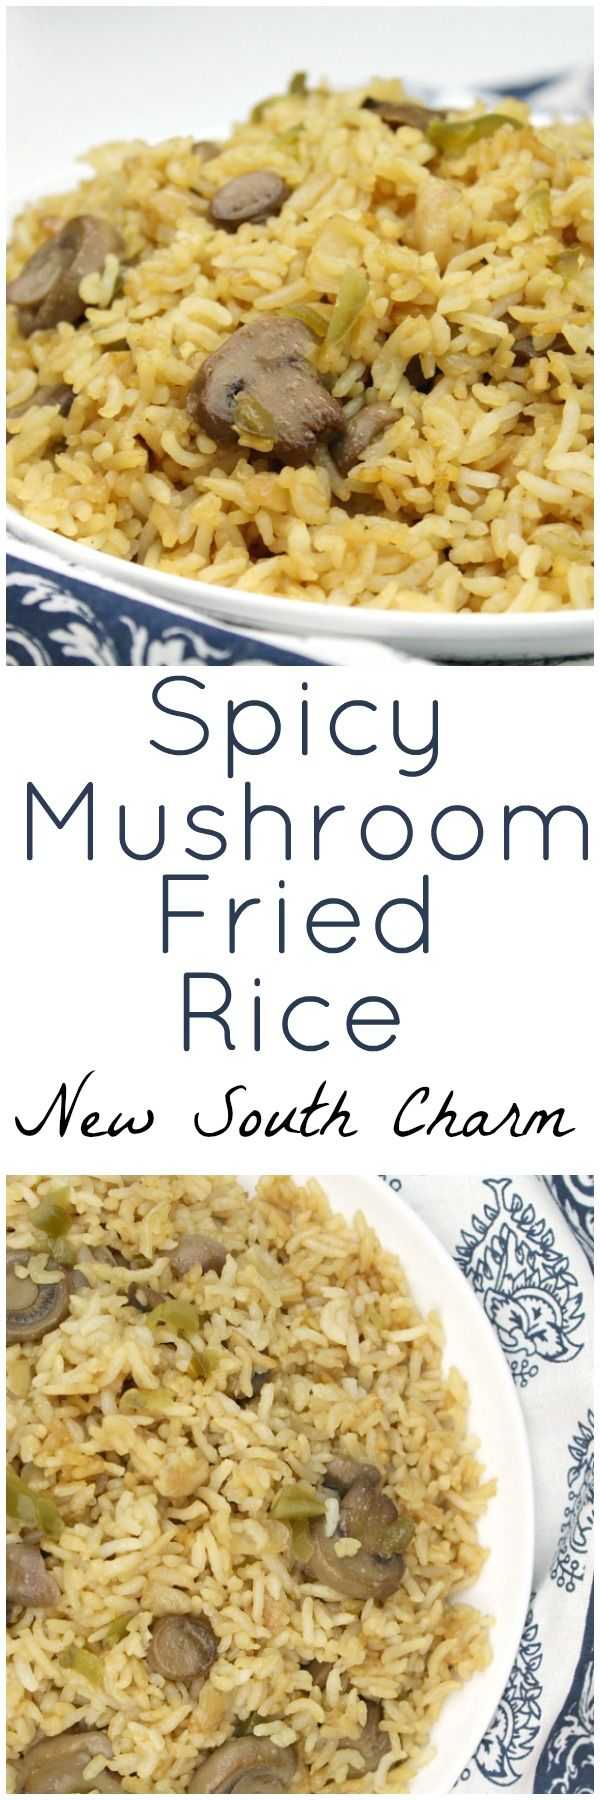 Spicy Mushroom Fried Rice is a great side dish that comes together in just a few minutes and is a great with chicken, pork, beef or fish. #ad #Veetee